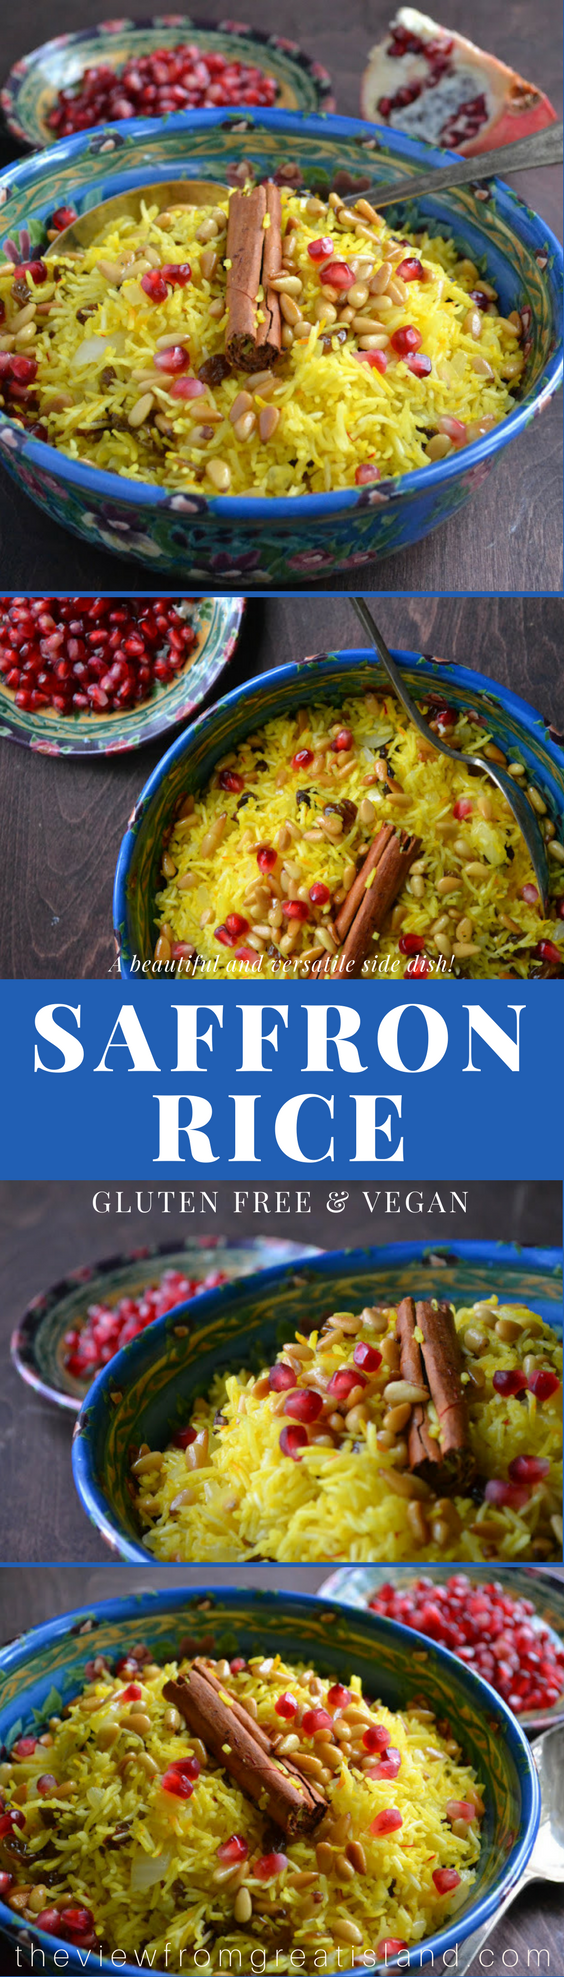 Saffron Rice is a simple but delightfully different side dish made with saffron scented basmati rice, sultanas, and pine nuts. It's gluten free and vegan! #rice #sidedish #thanksgiving #Christmas #middleeastern #glutenfree #vegan #vegetarian #pilaf #pomegranate #healthy